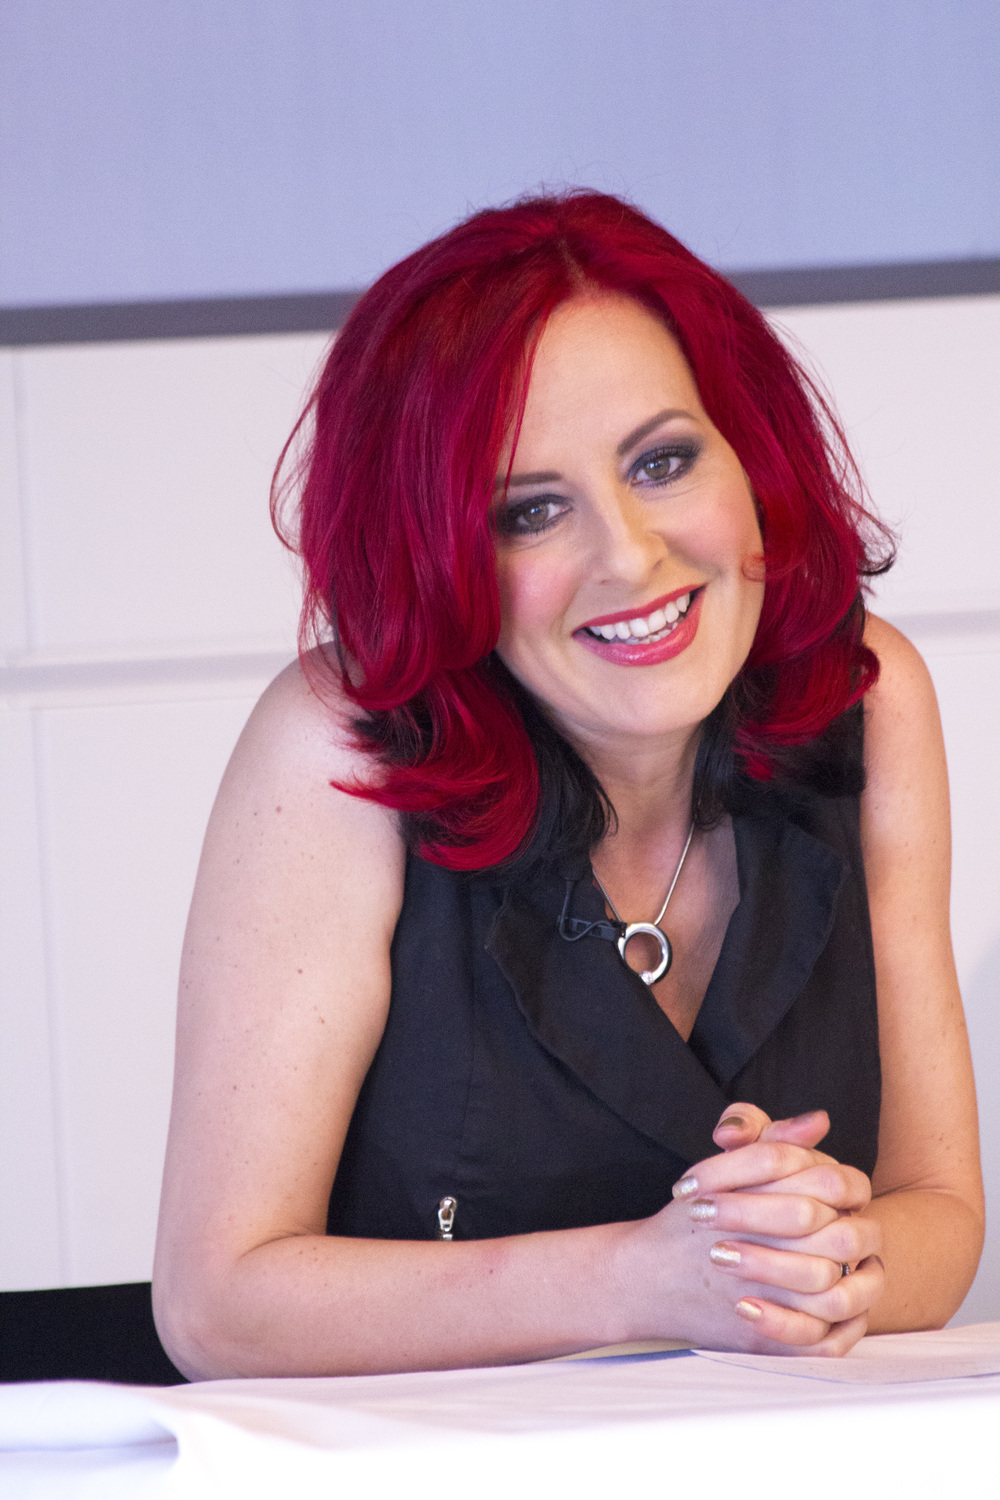 Carrie Grant, TV Presenter and Vocal Coach.  Carrie participated in the Question & Answer Panel debate.